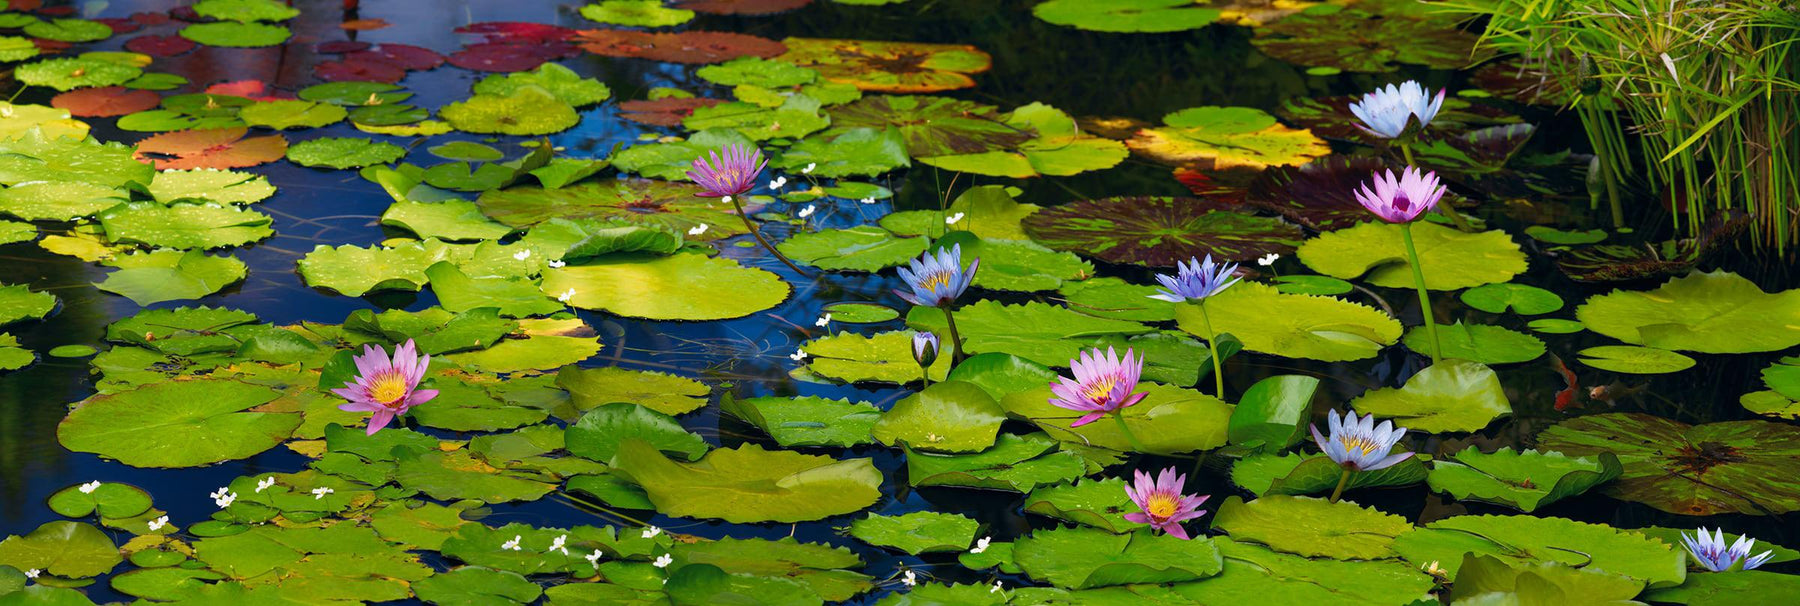 Pond filled with lily pads and pink and purple lilies in Maui Hawaii